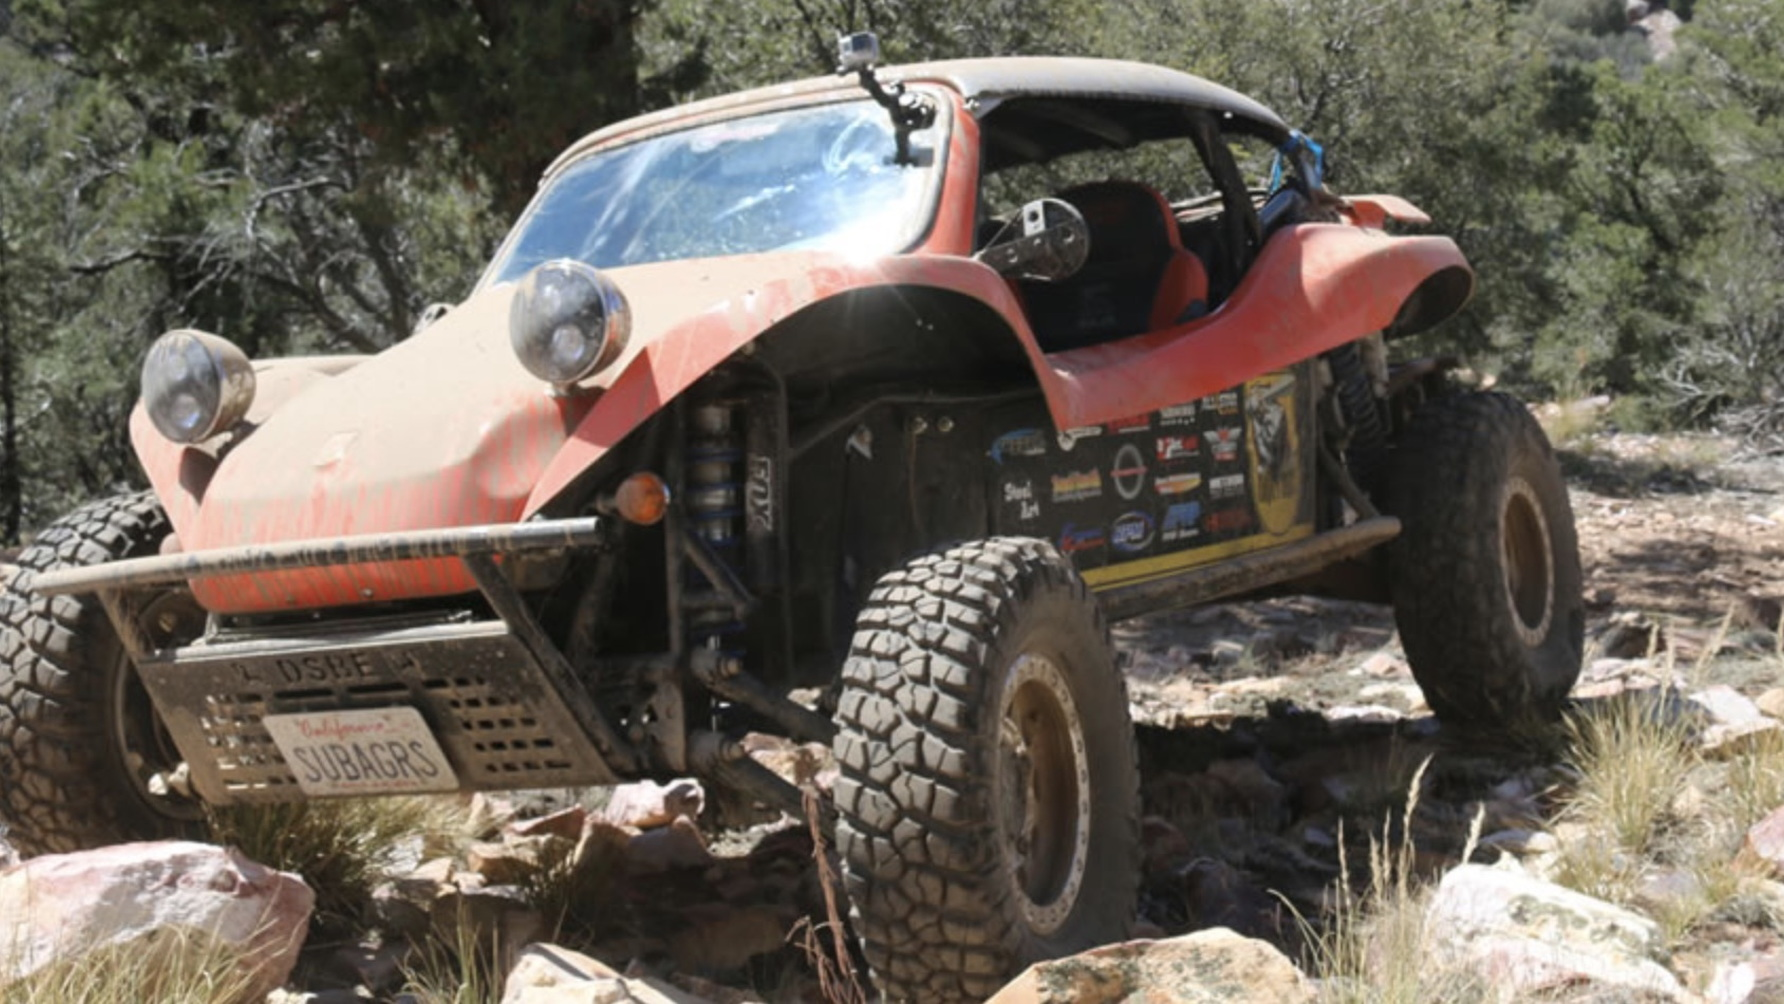 Texas revoking titles for dune buggies and other kit cars